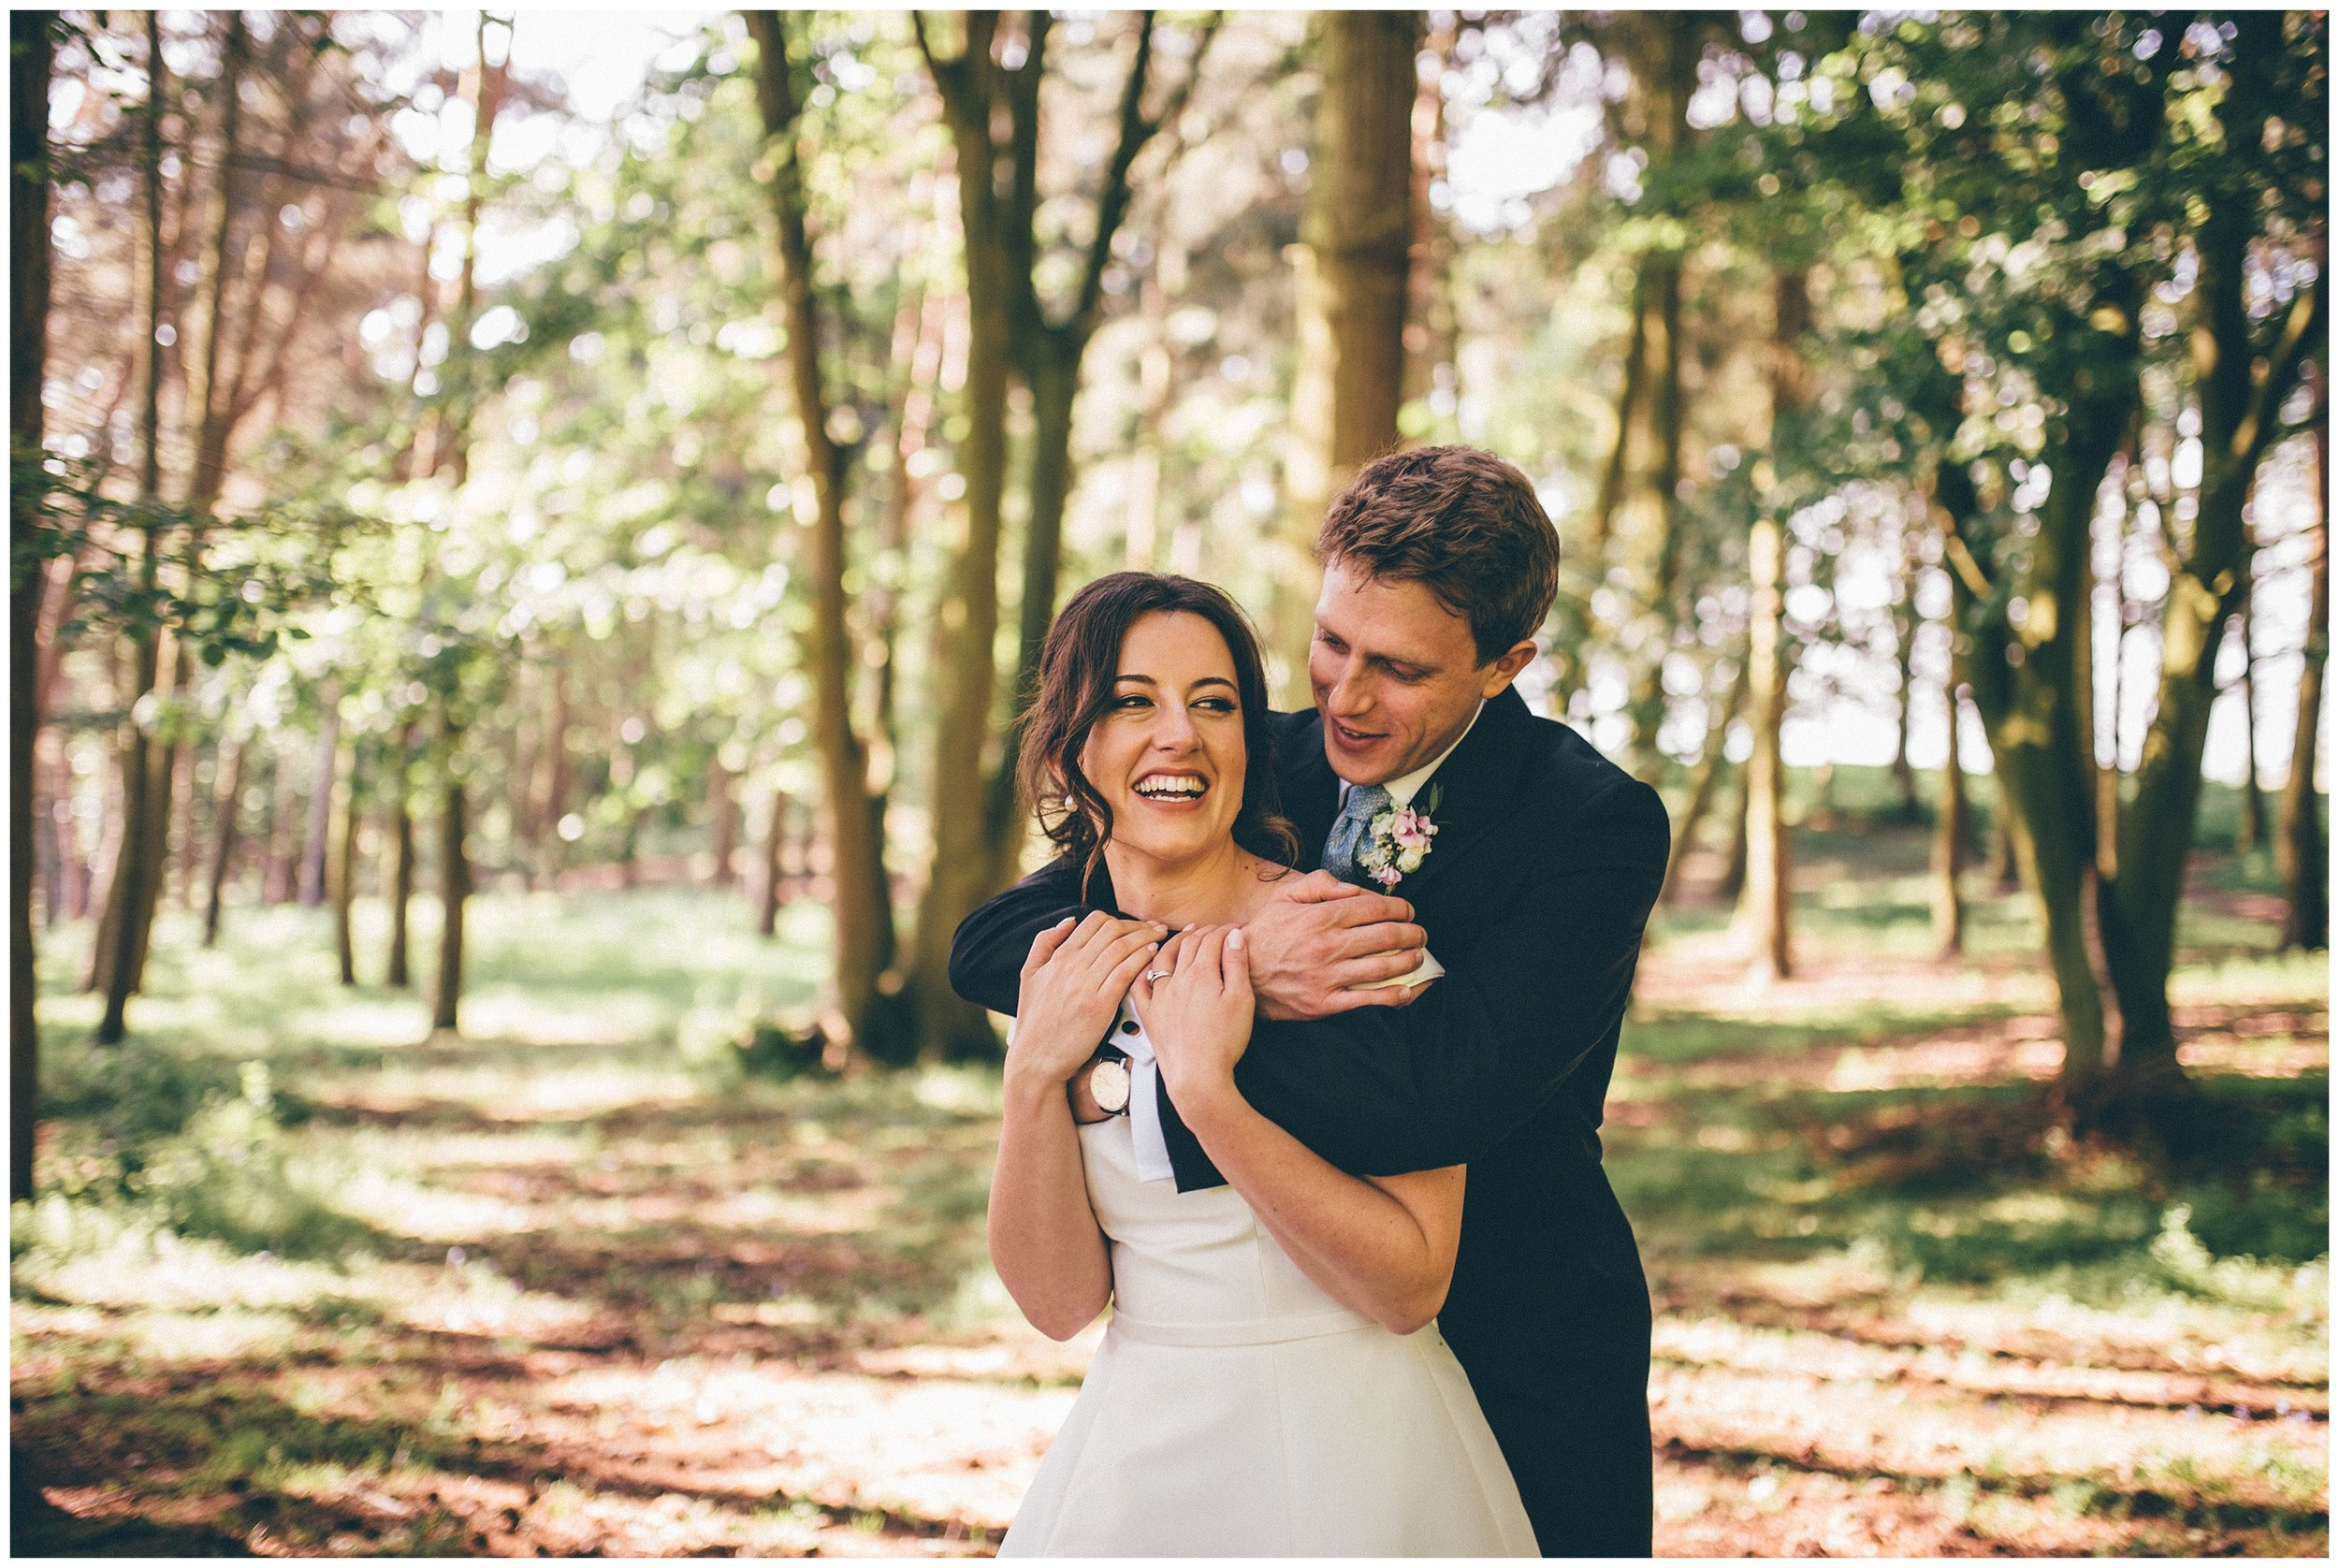 Bride and groom photographed at Henham Park wedding barns by Cheshire wedding photographer.